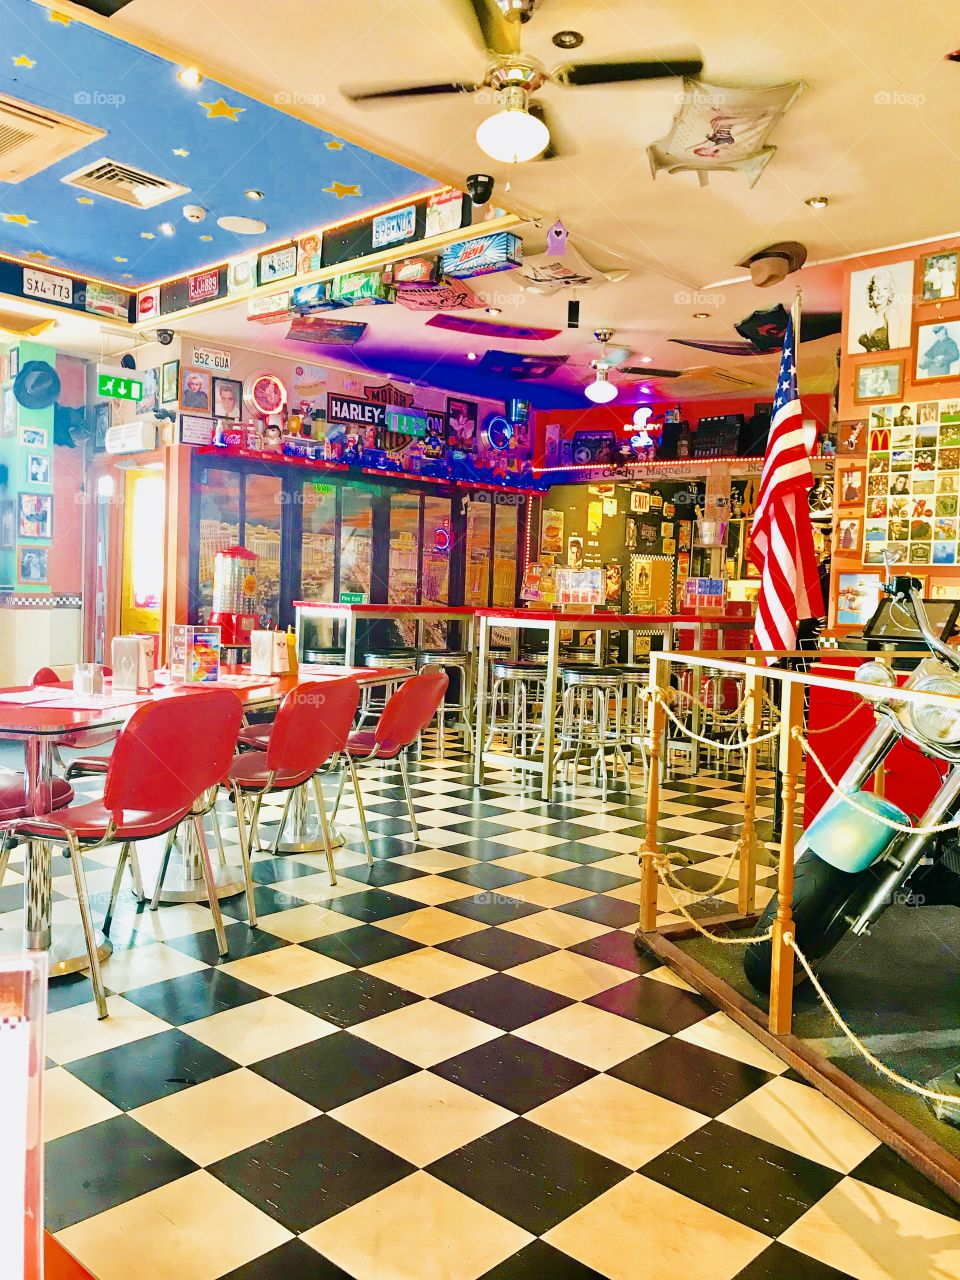 American Diner in Brighton 1950s America style grease United States retro USA vintage